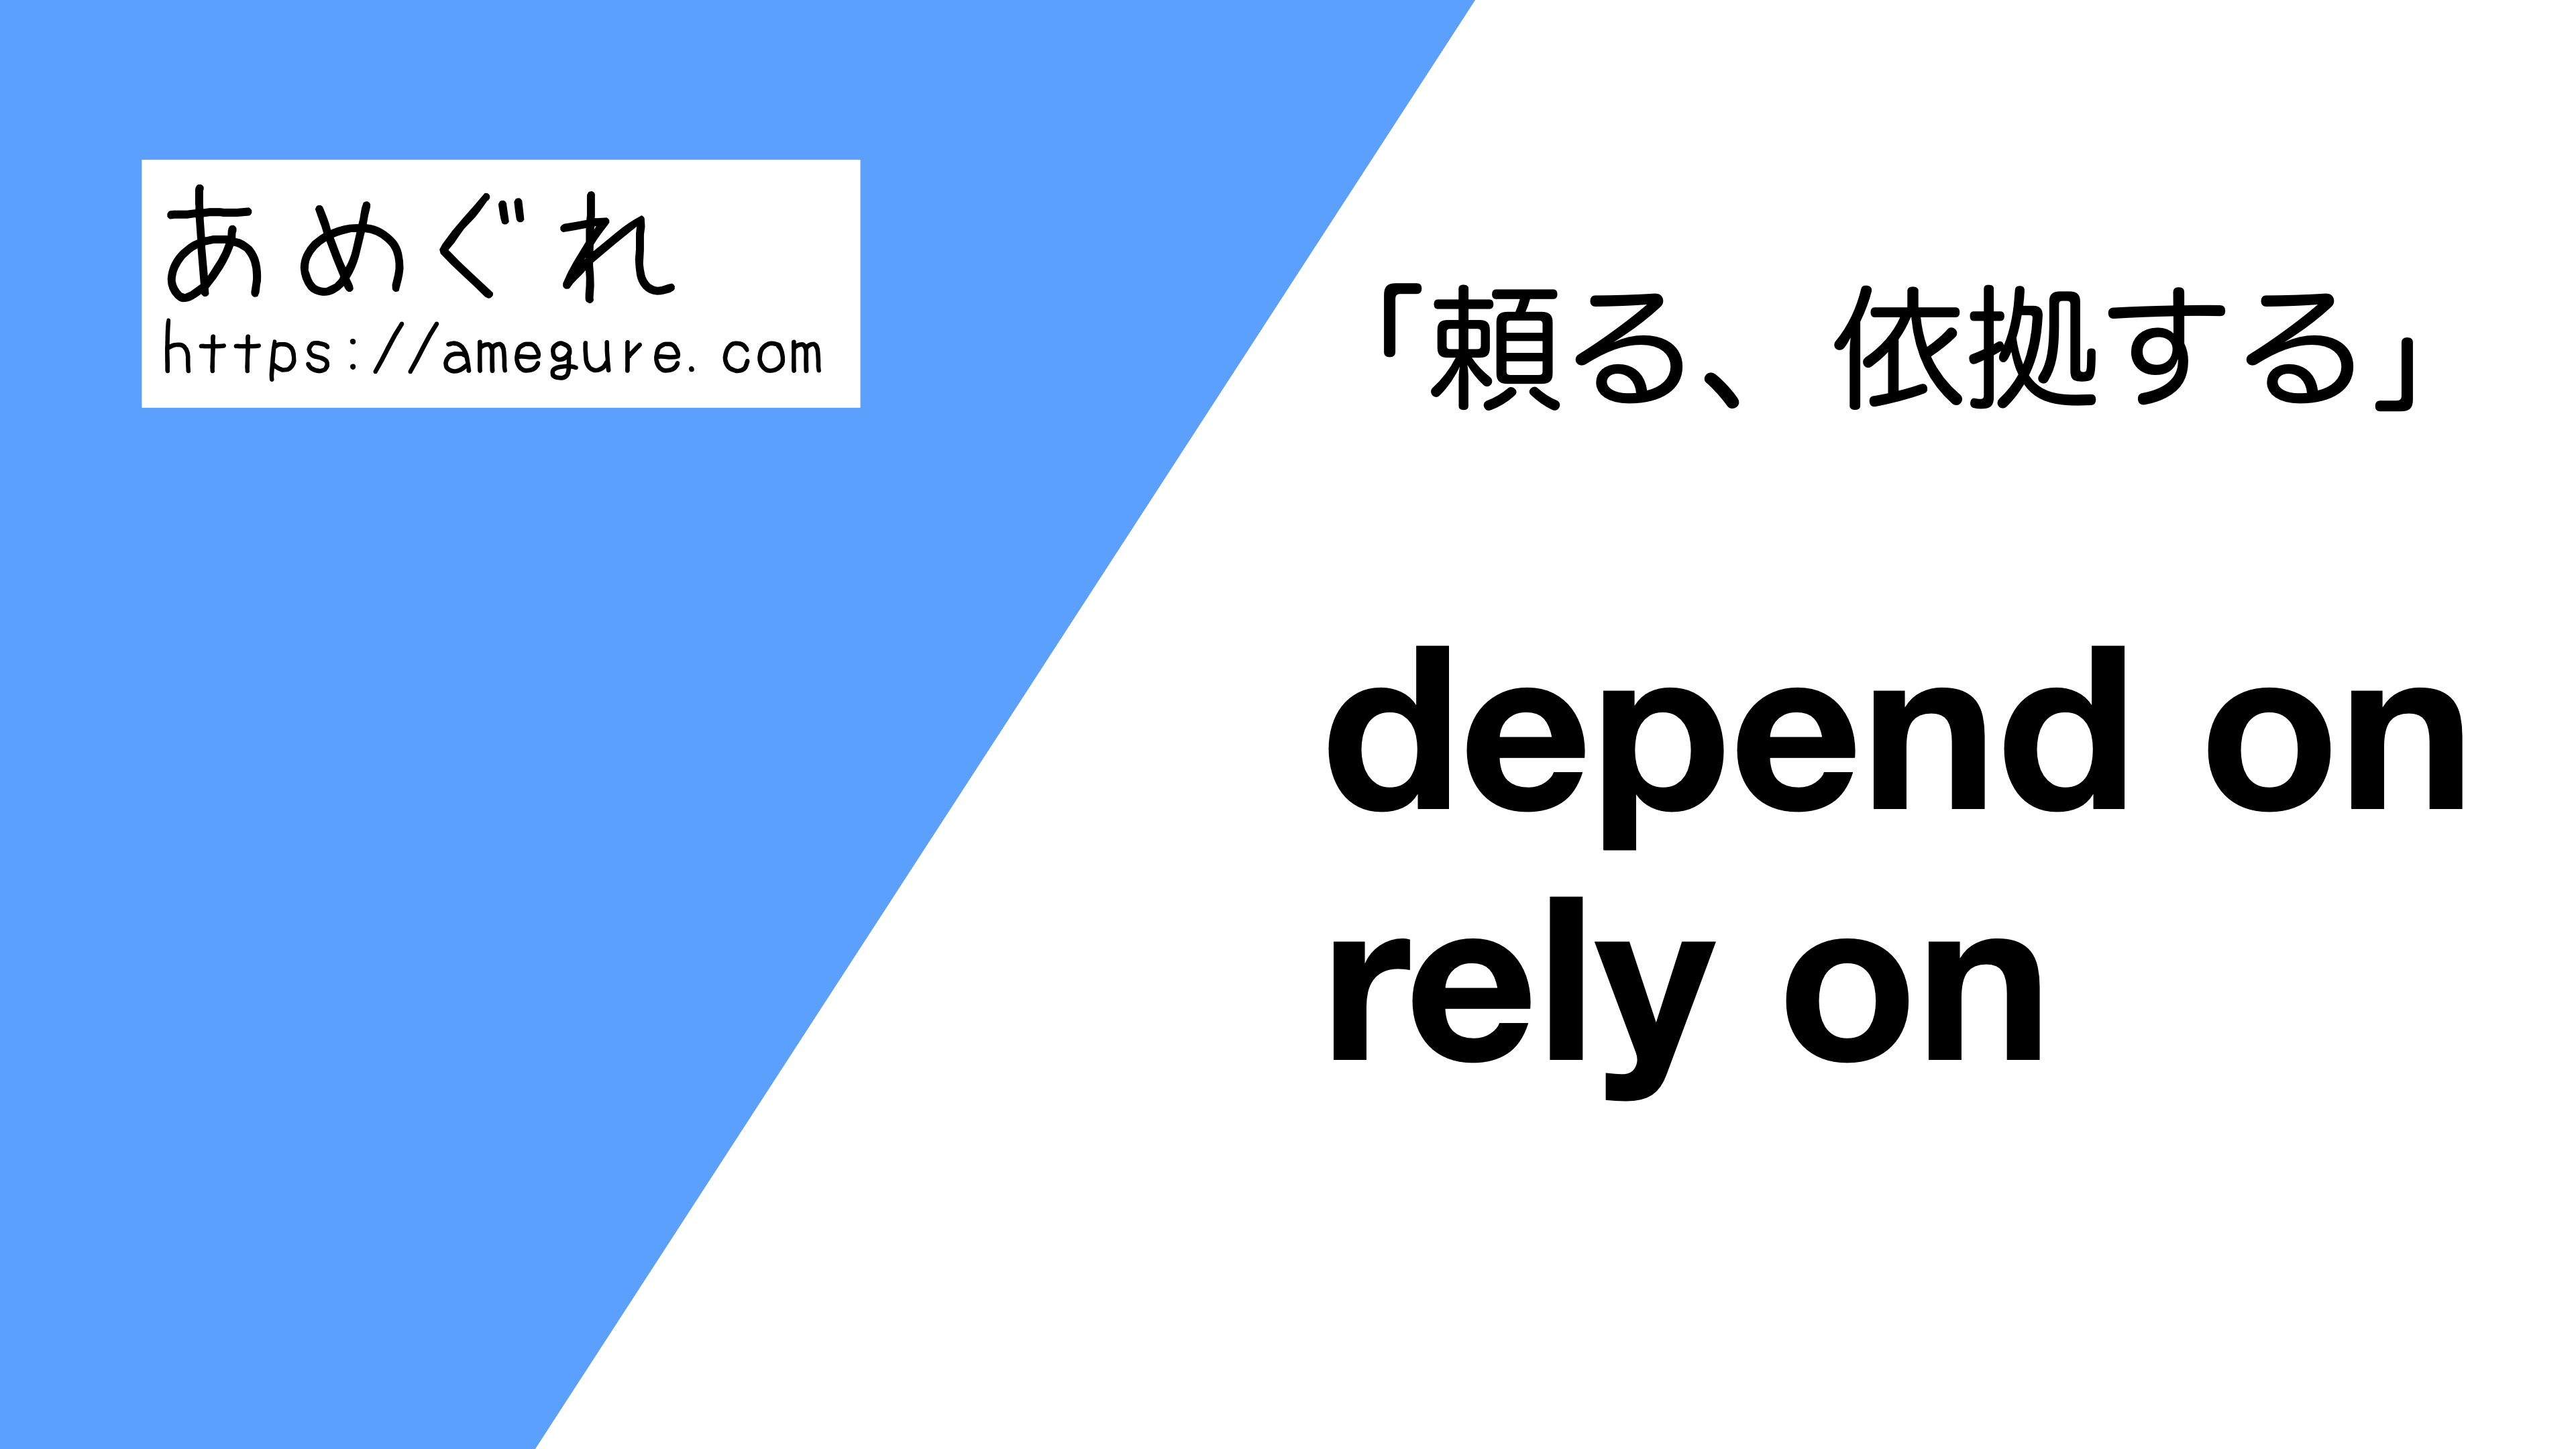 depend-on-rely-on違い